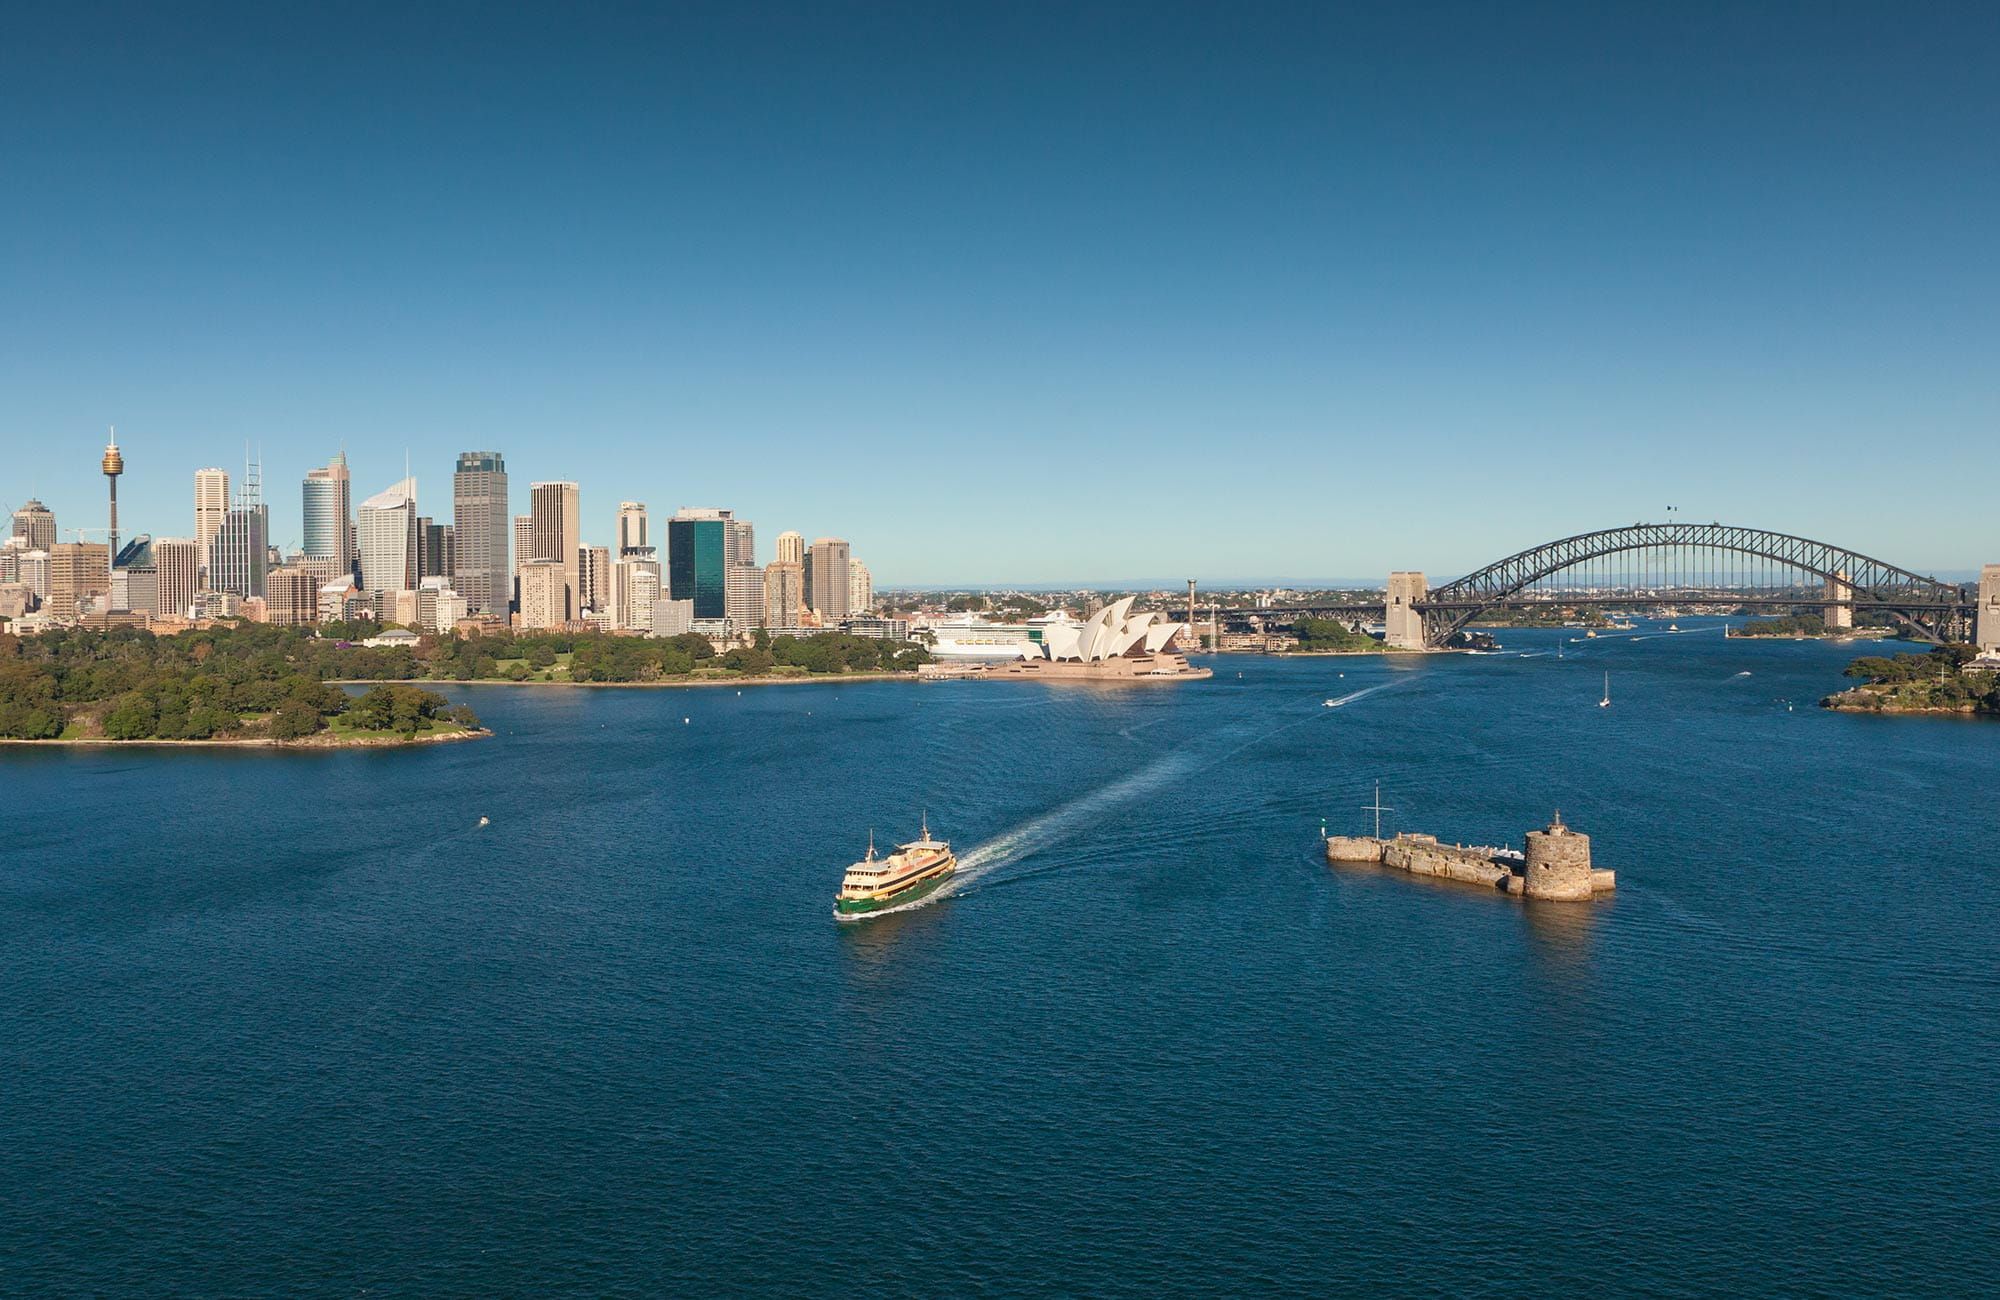 Sydney Harbour National Park. Photo: David Finnegan